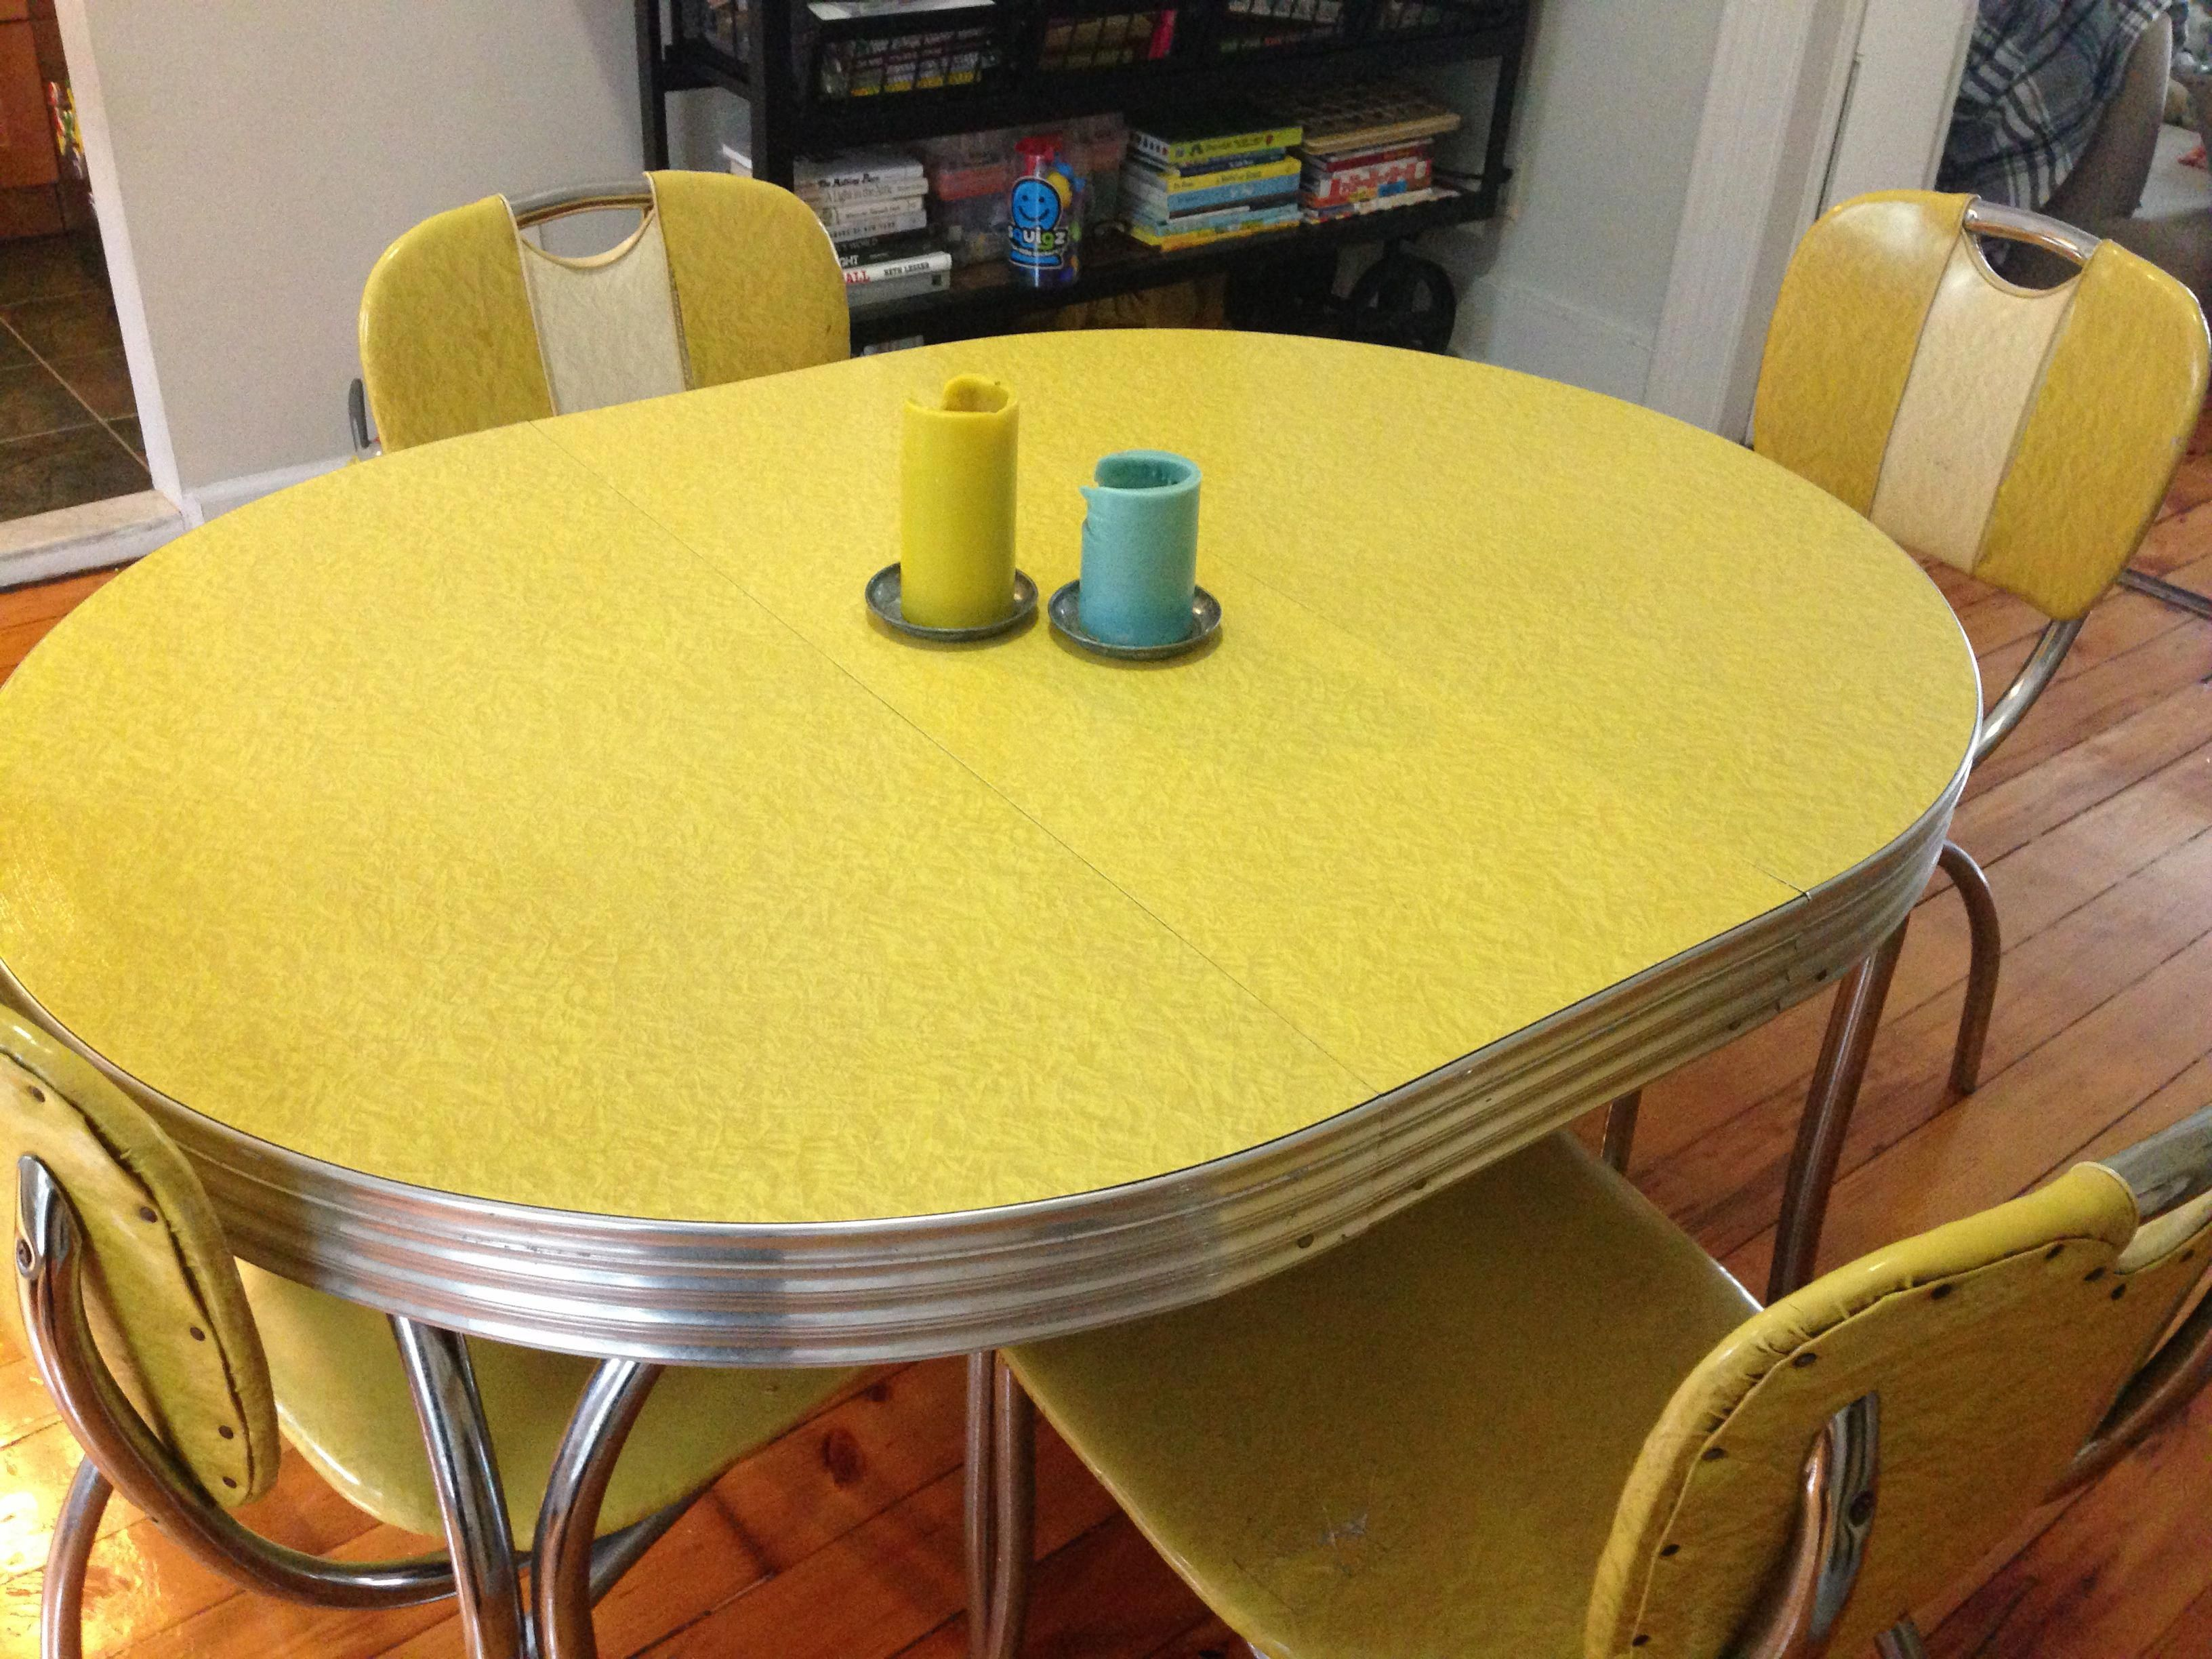 Beautiful Table And Chair Set From The 1940s For Your Kitchen Or Dining Room Condition Good Vintage Kitchen Table Retro Table And Chairs Retro Kitchen Tables